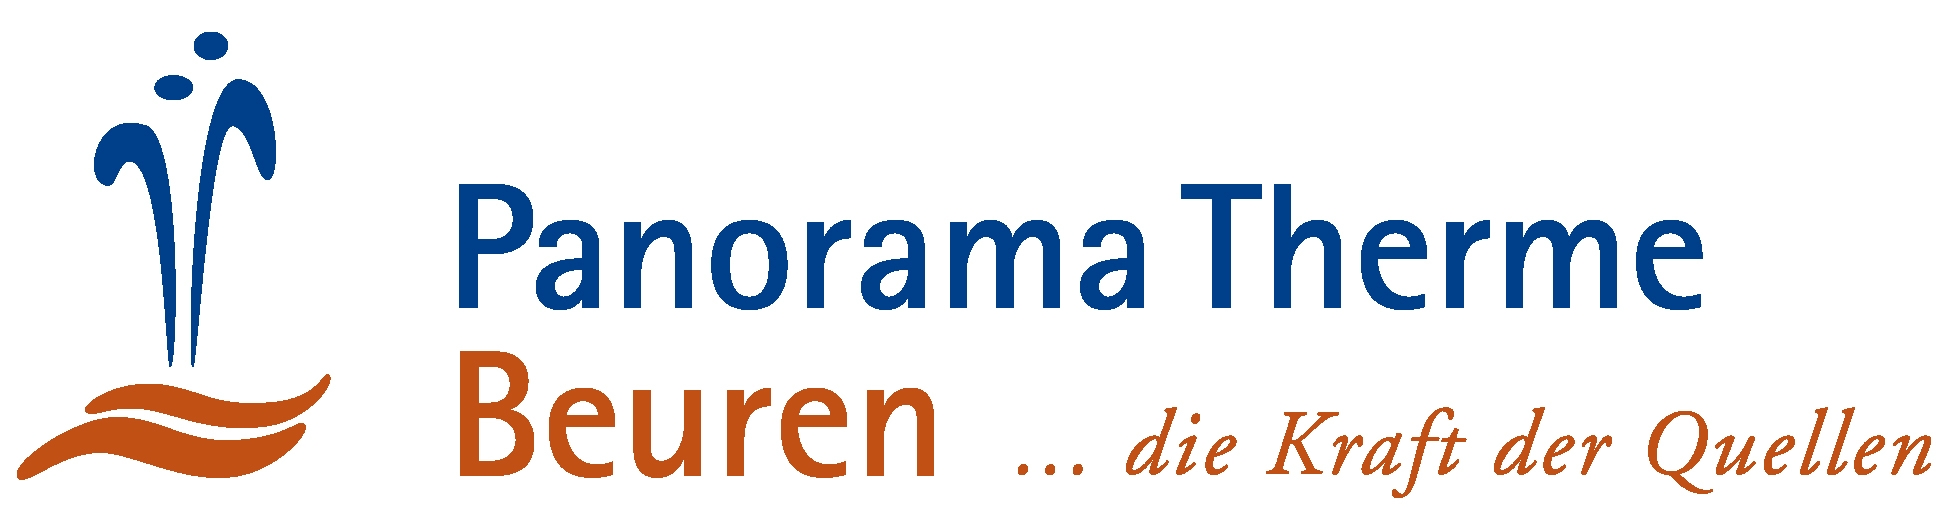 Logo Panorama Therme Beuren